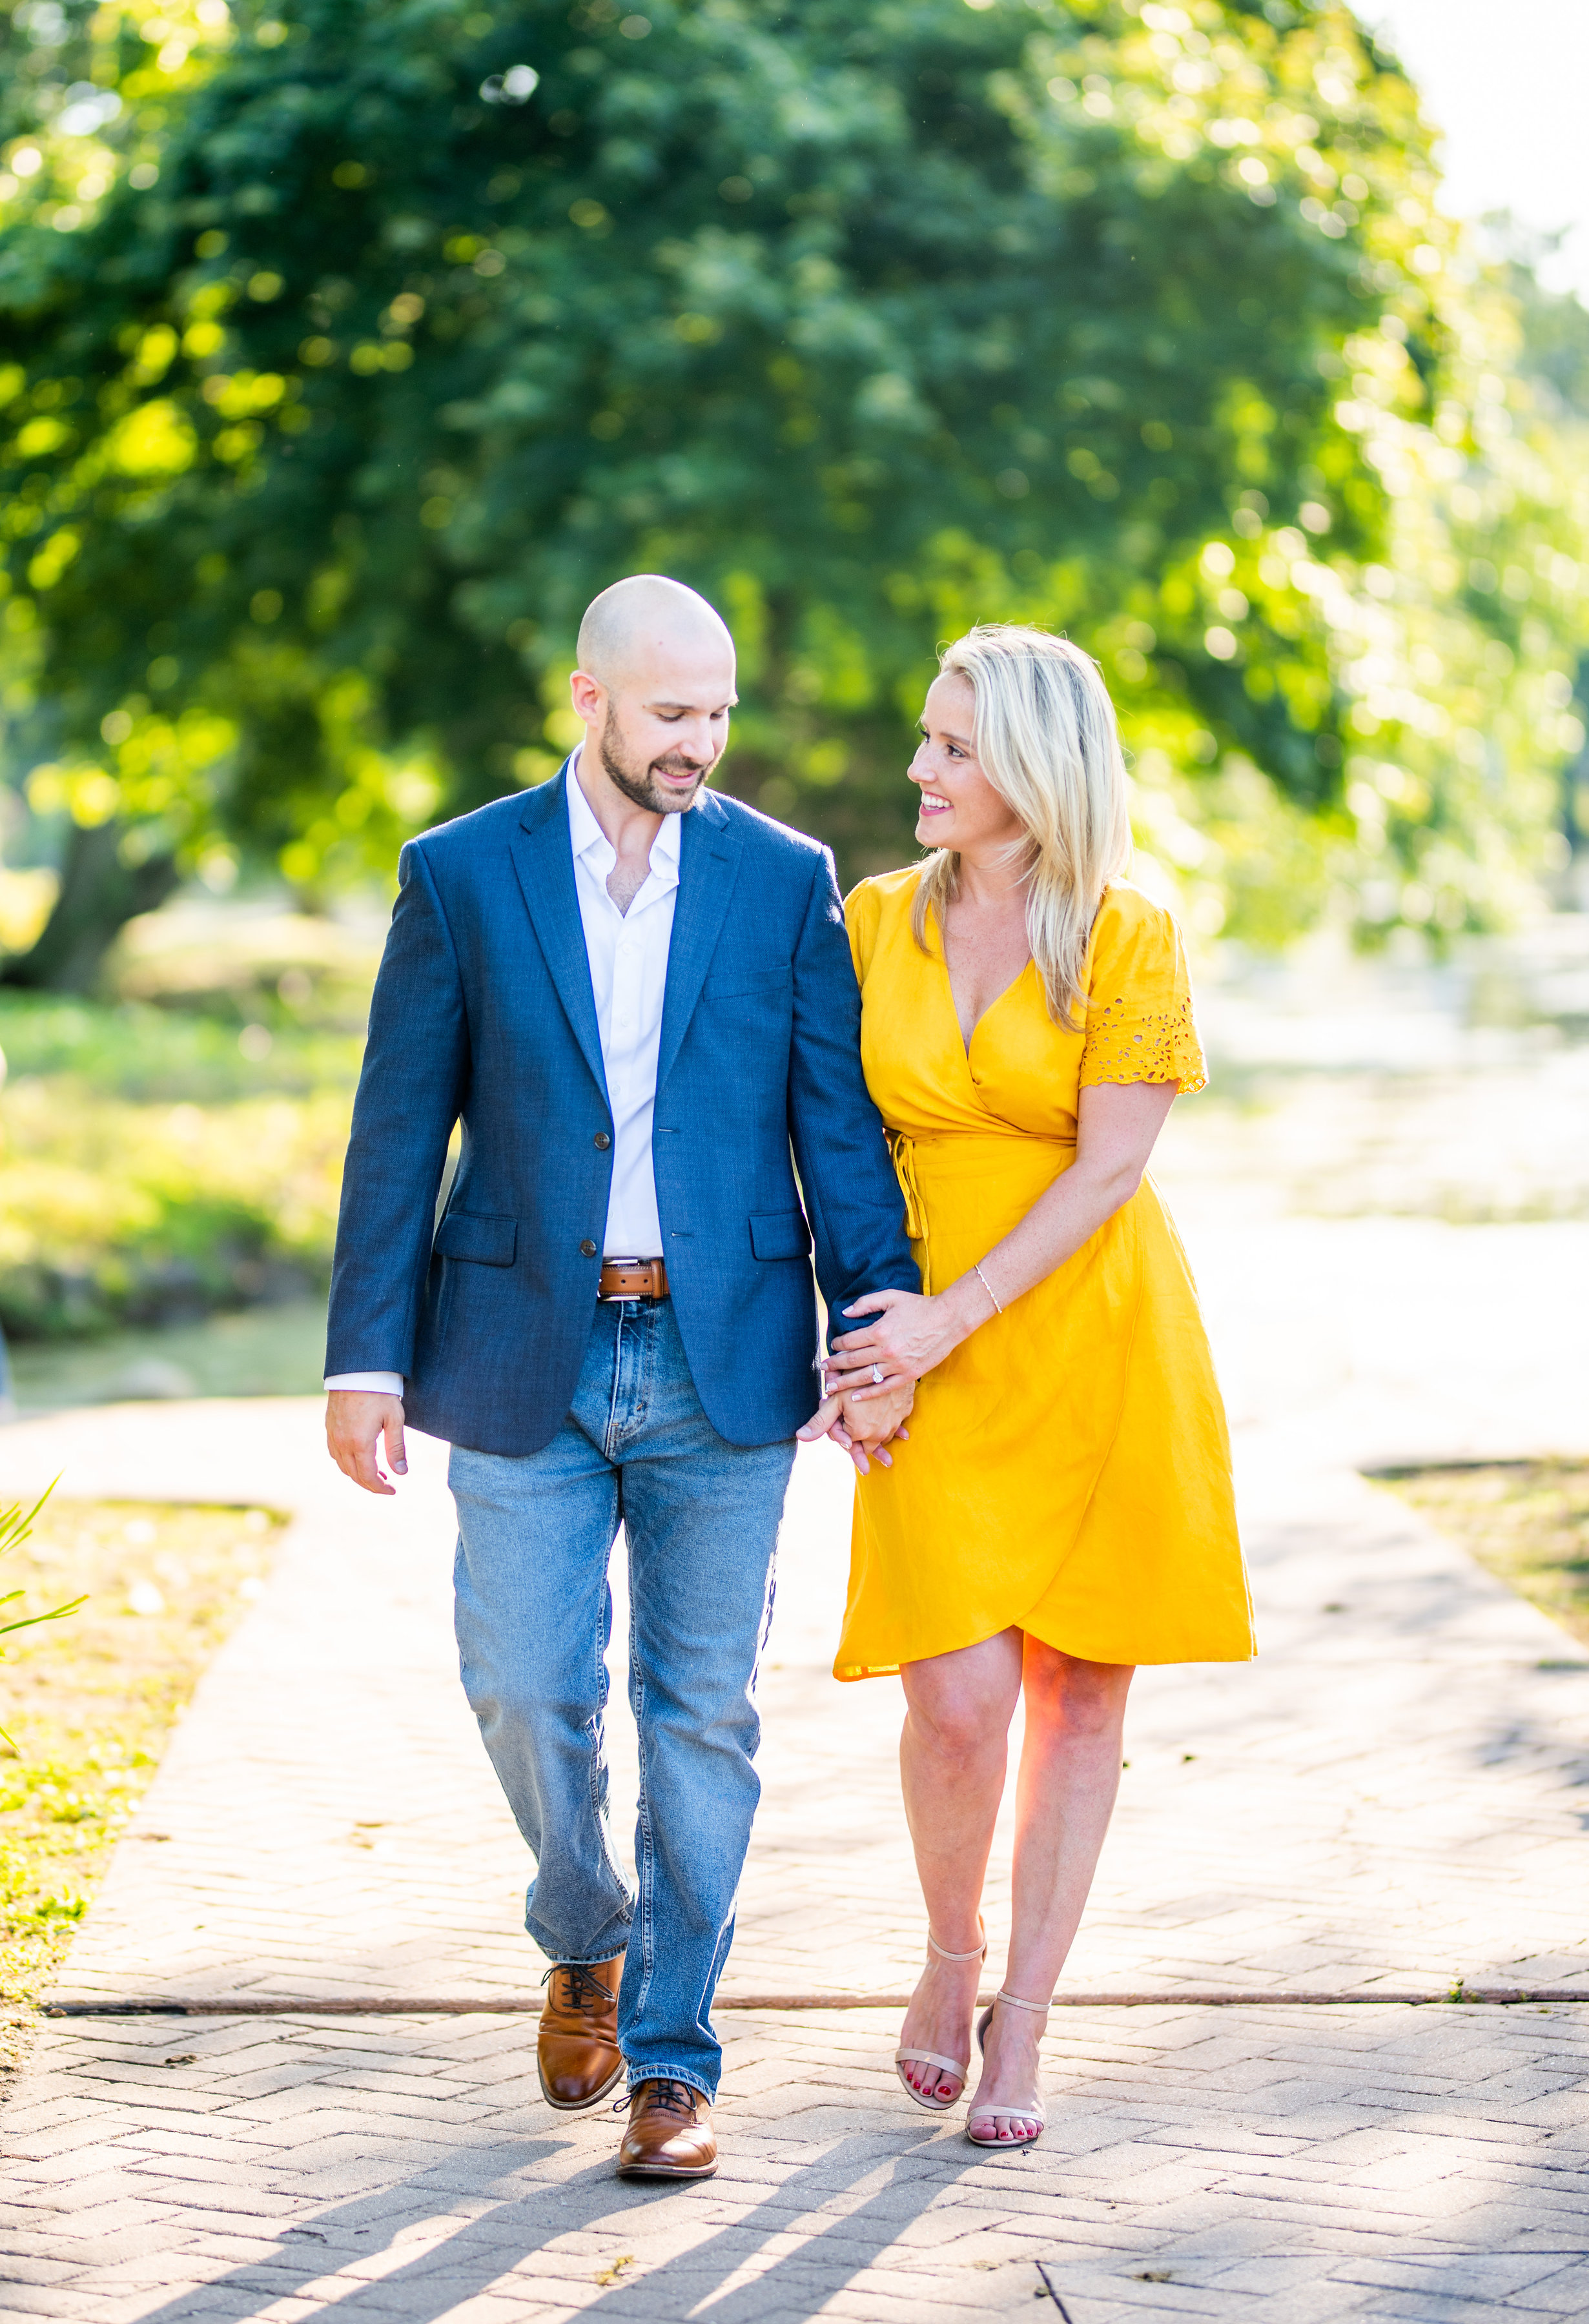 Hecksher Park Engagement Shoot | Long Island Wedding Photographer | Long Island Wedding Photographers8